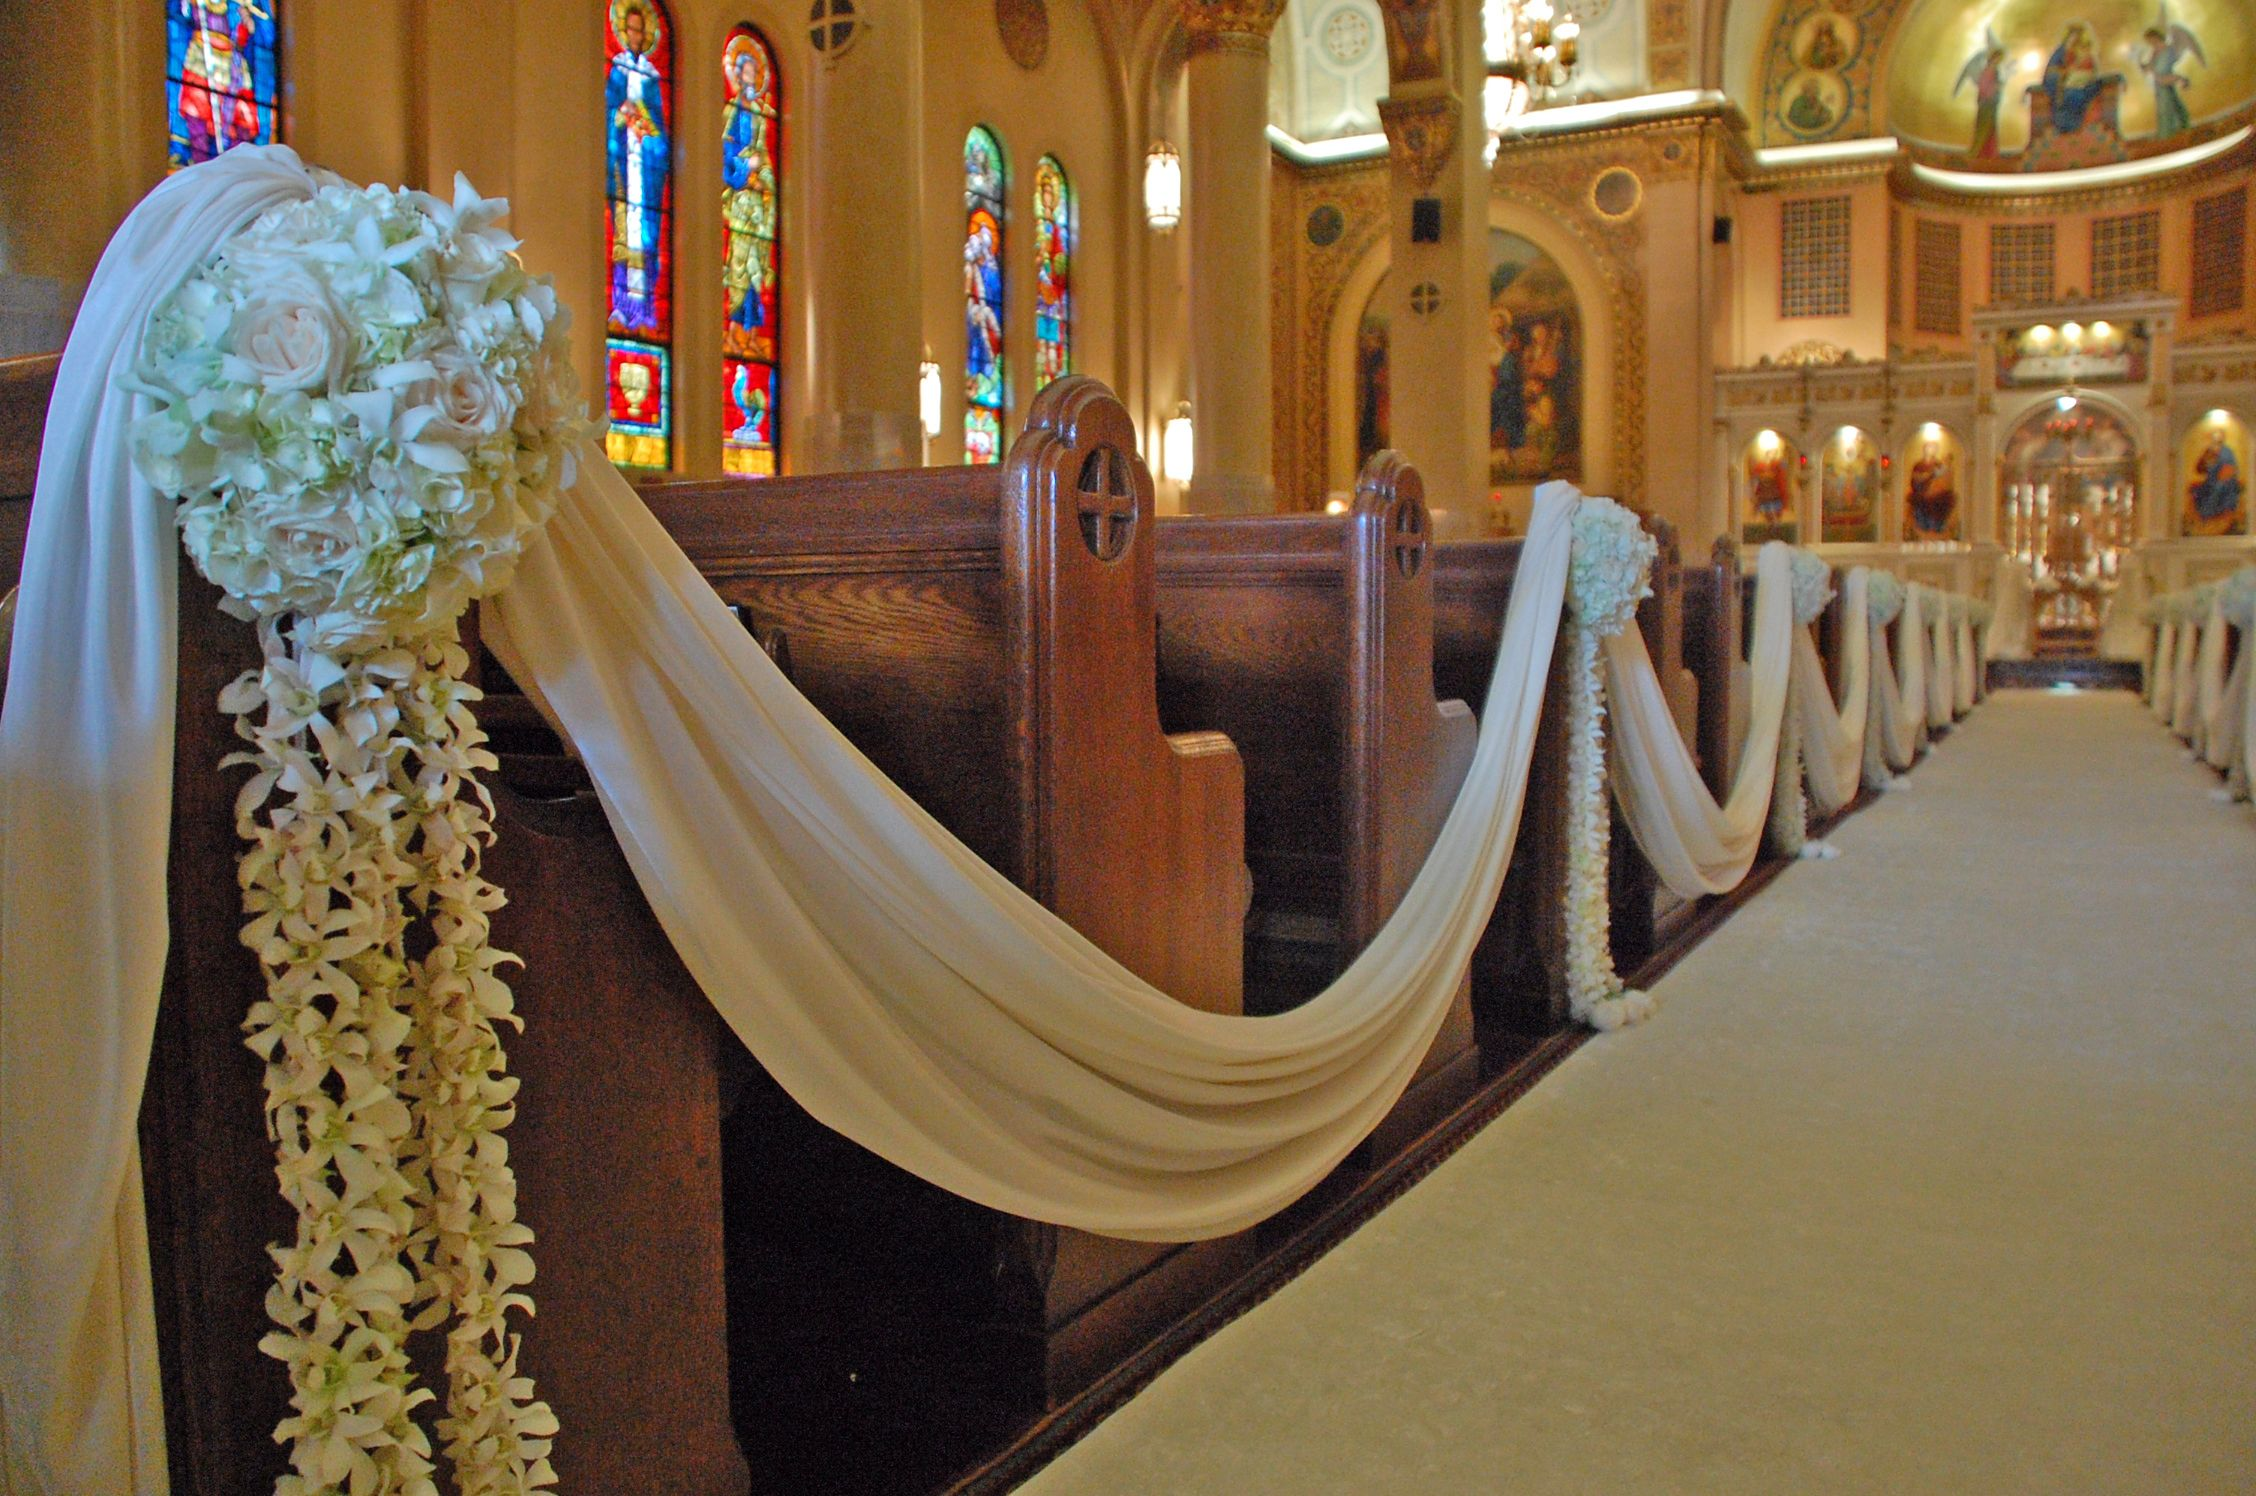 Pew draping swag option without the flowers tabitha dwayne pinterest cascading flowers - Flower wedding decoration ...